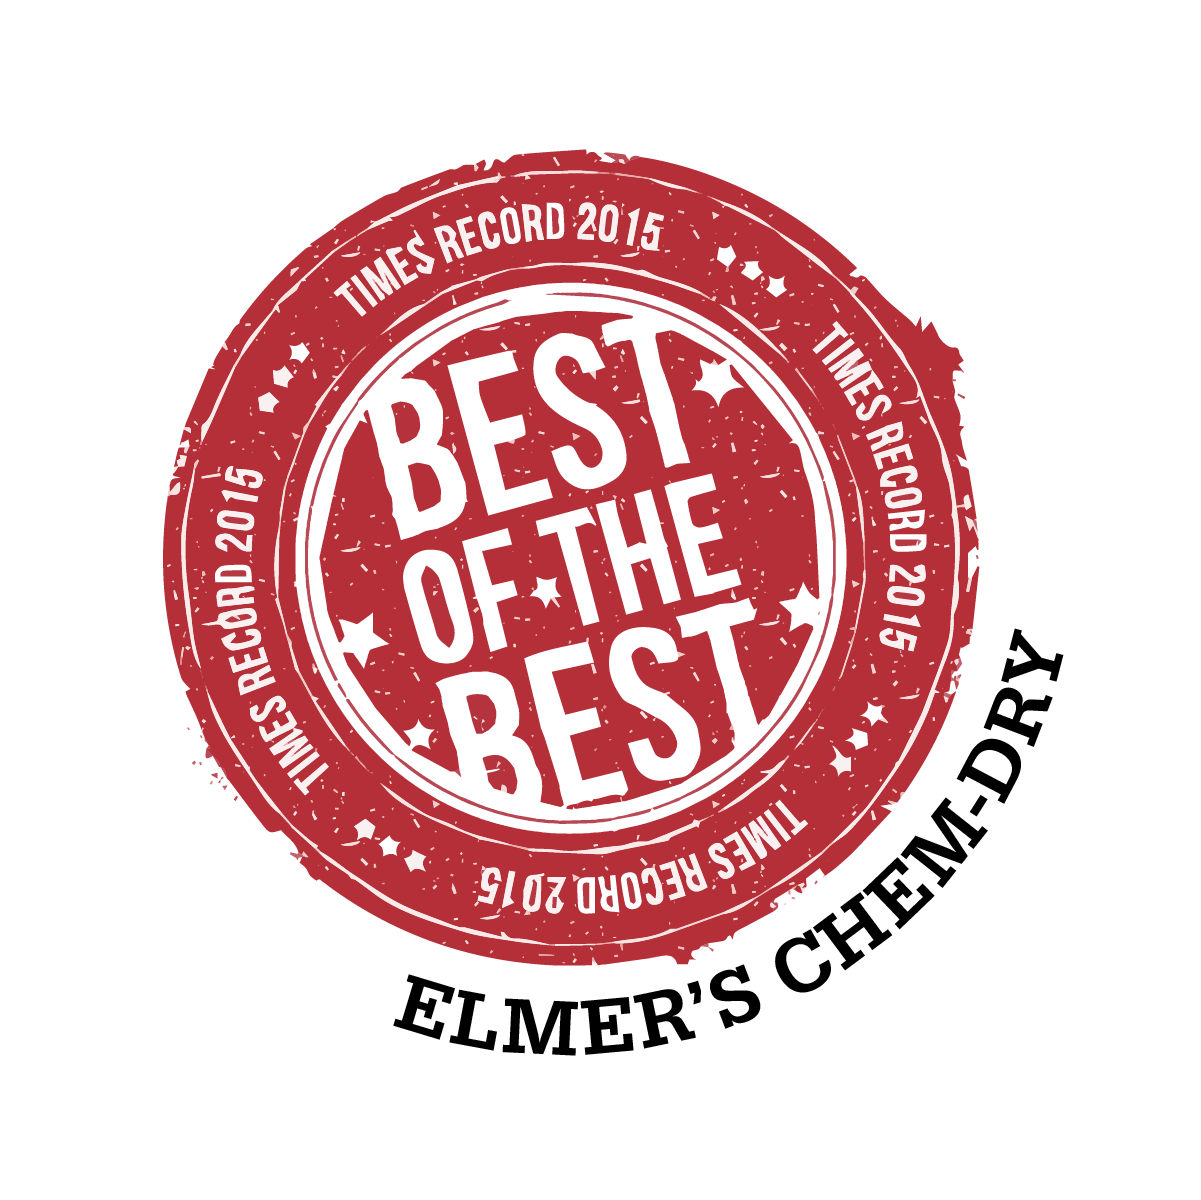 2015 Best of the Best award sticker